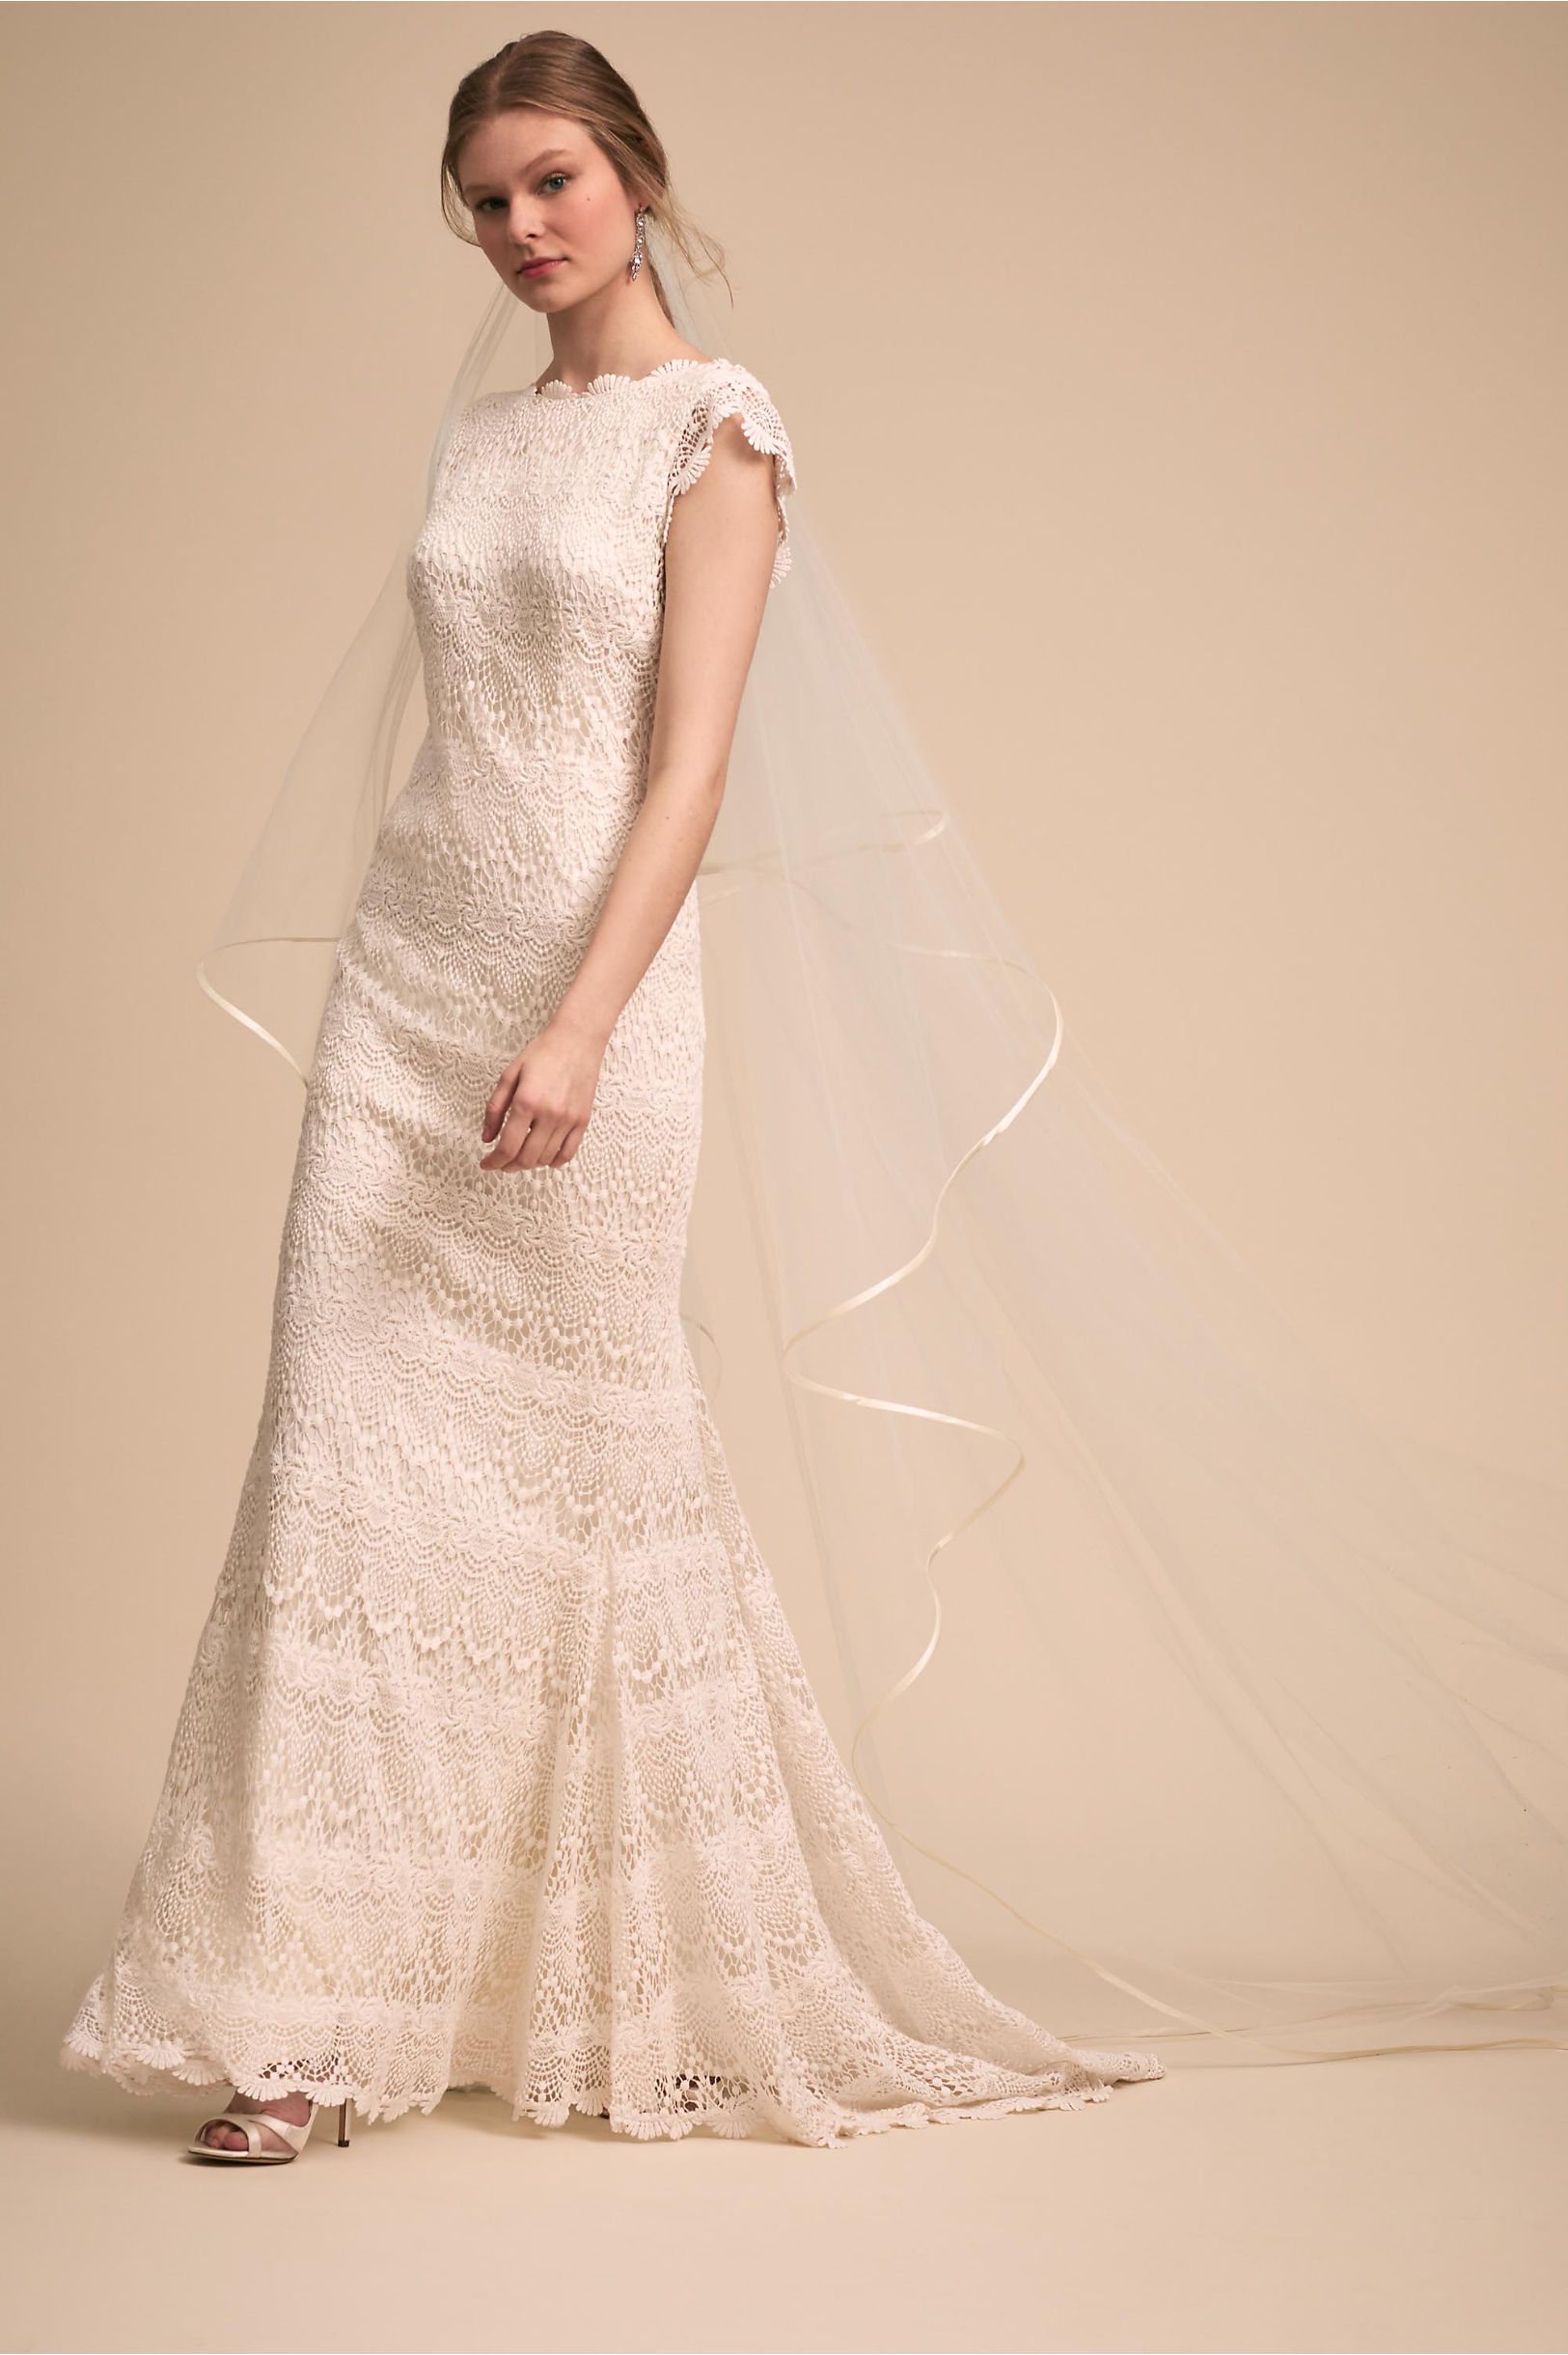 Piper Gown Ivory in New | BHLDN